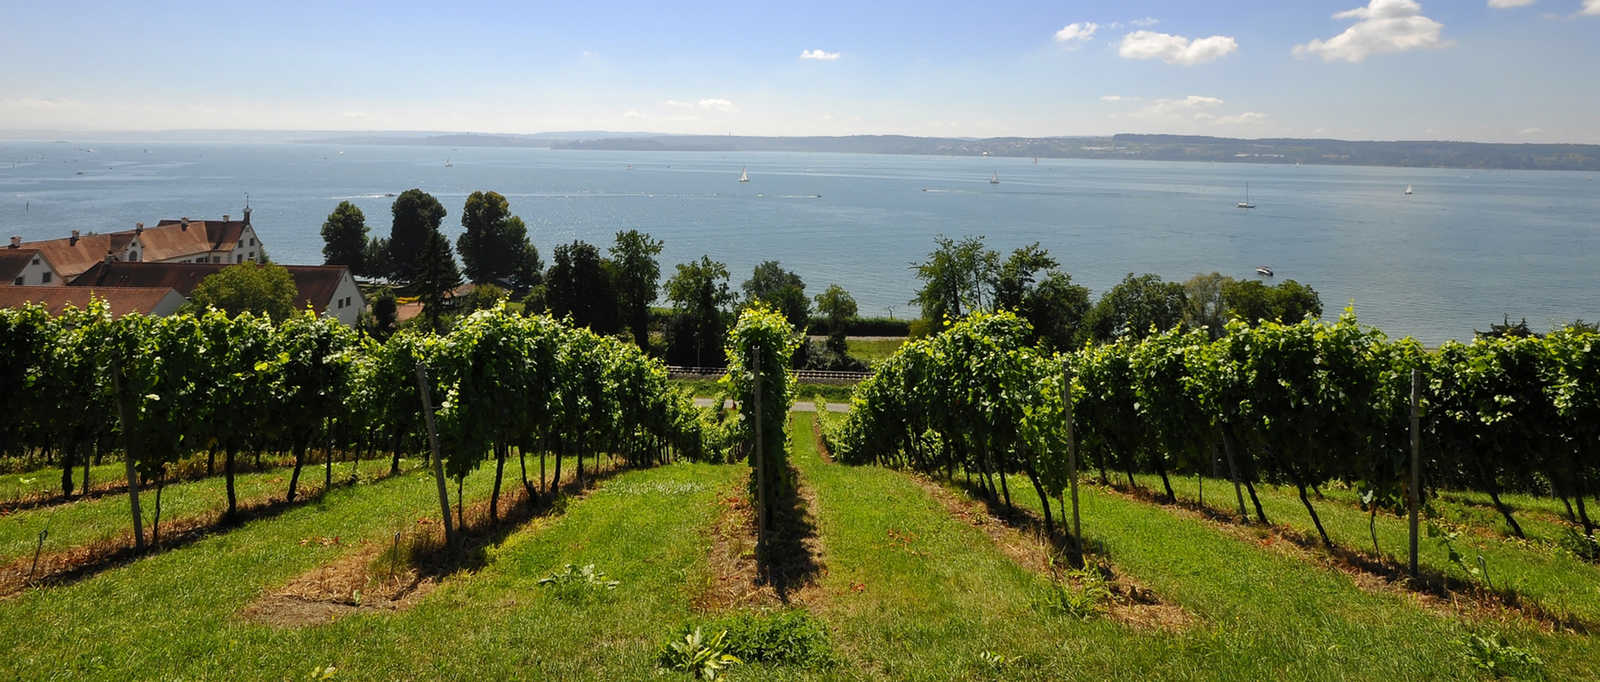 Vineyards set on hilltop overlooking Lake Constance, Italy